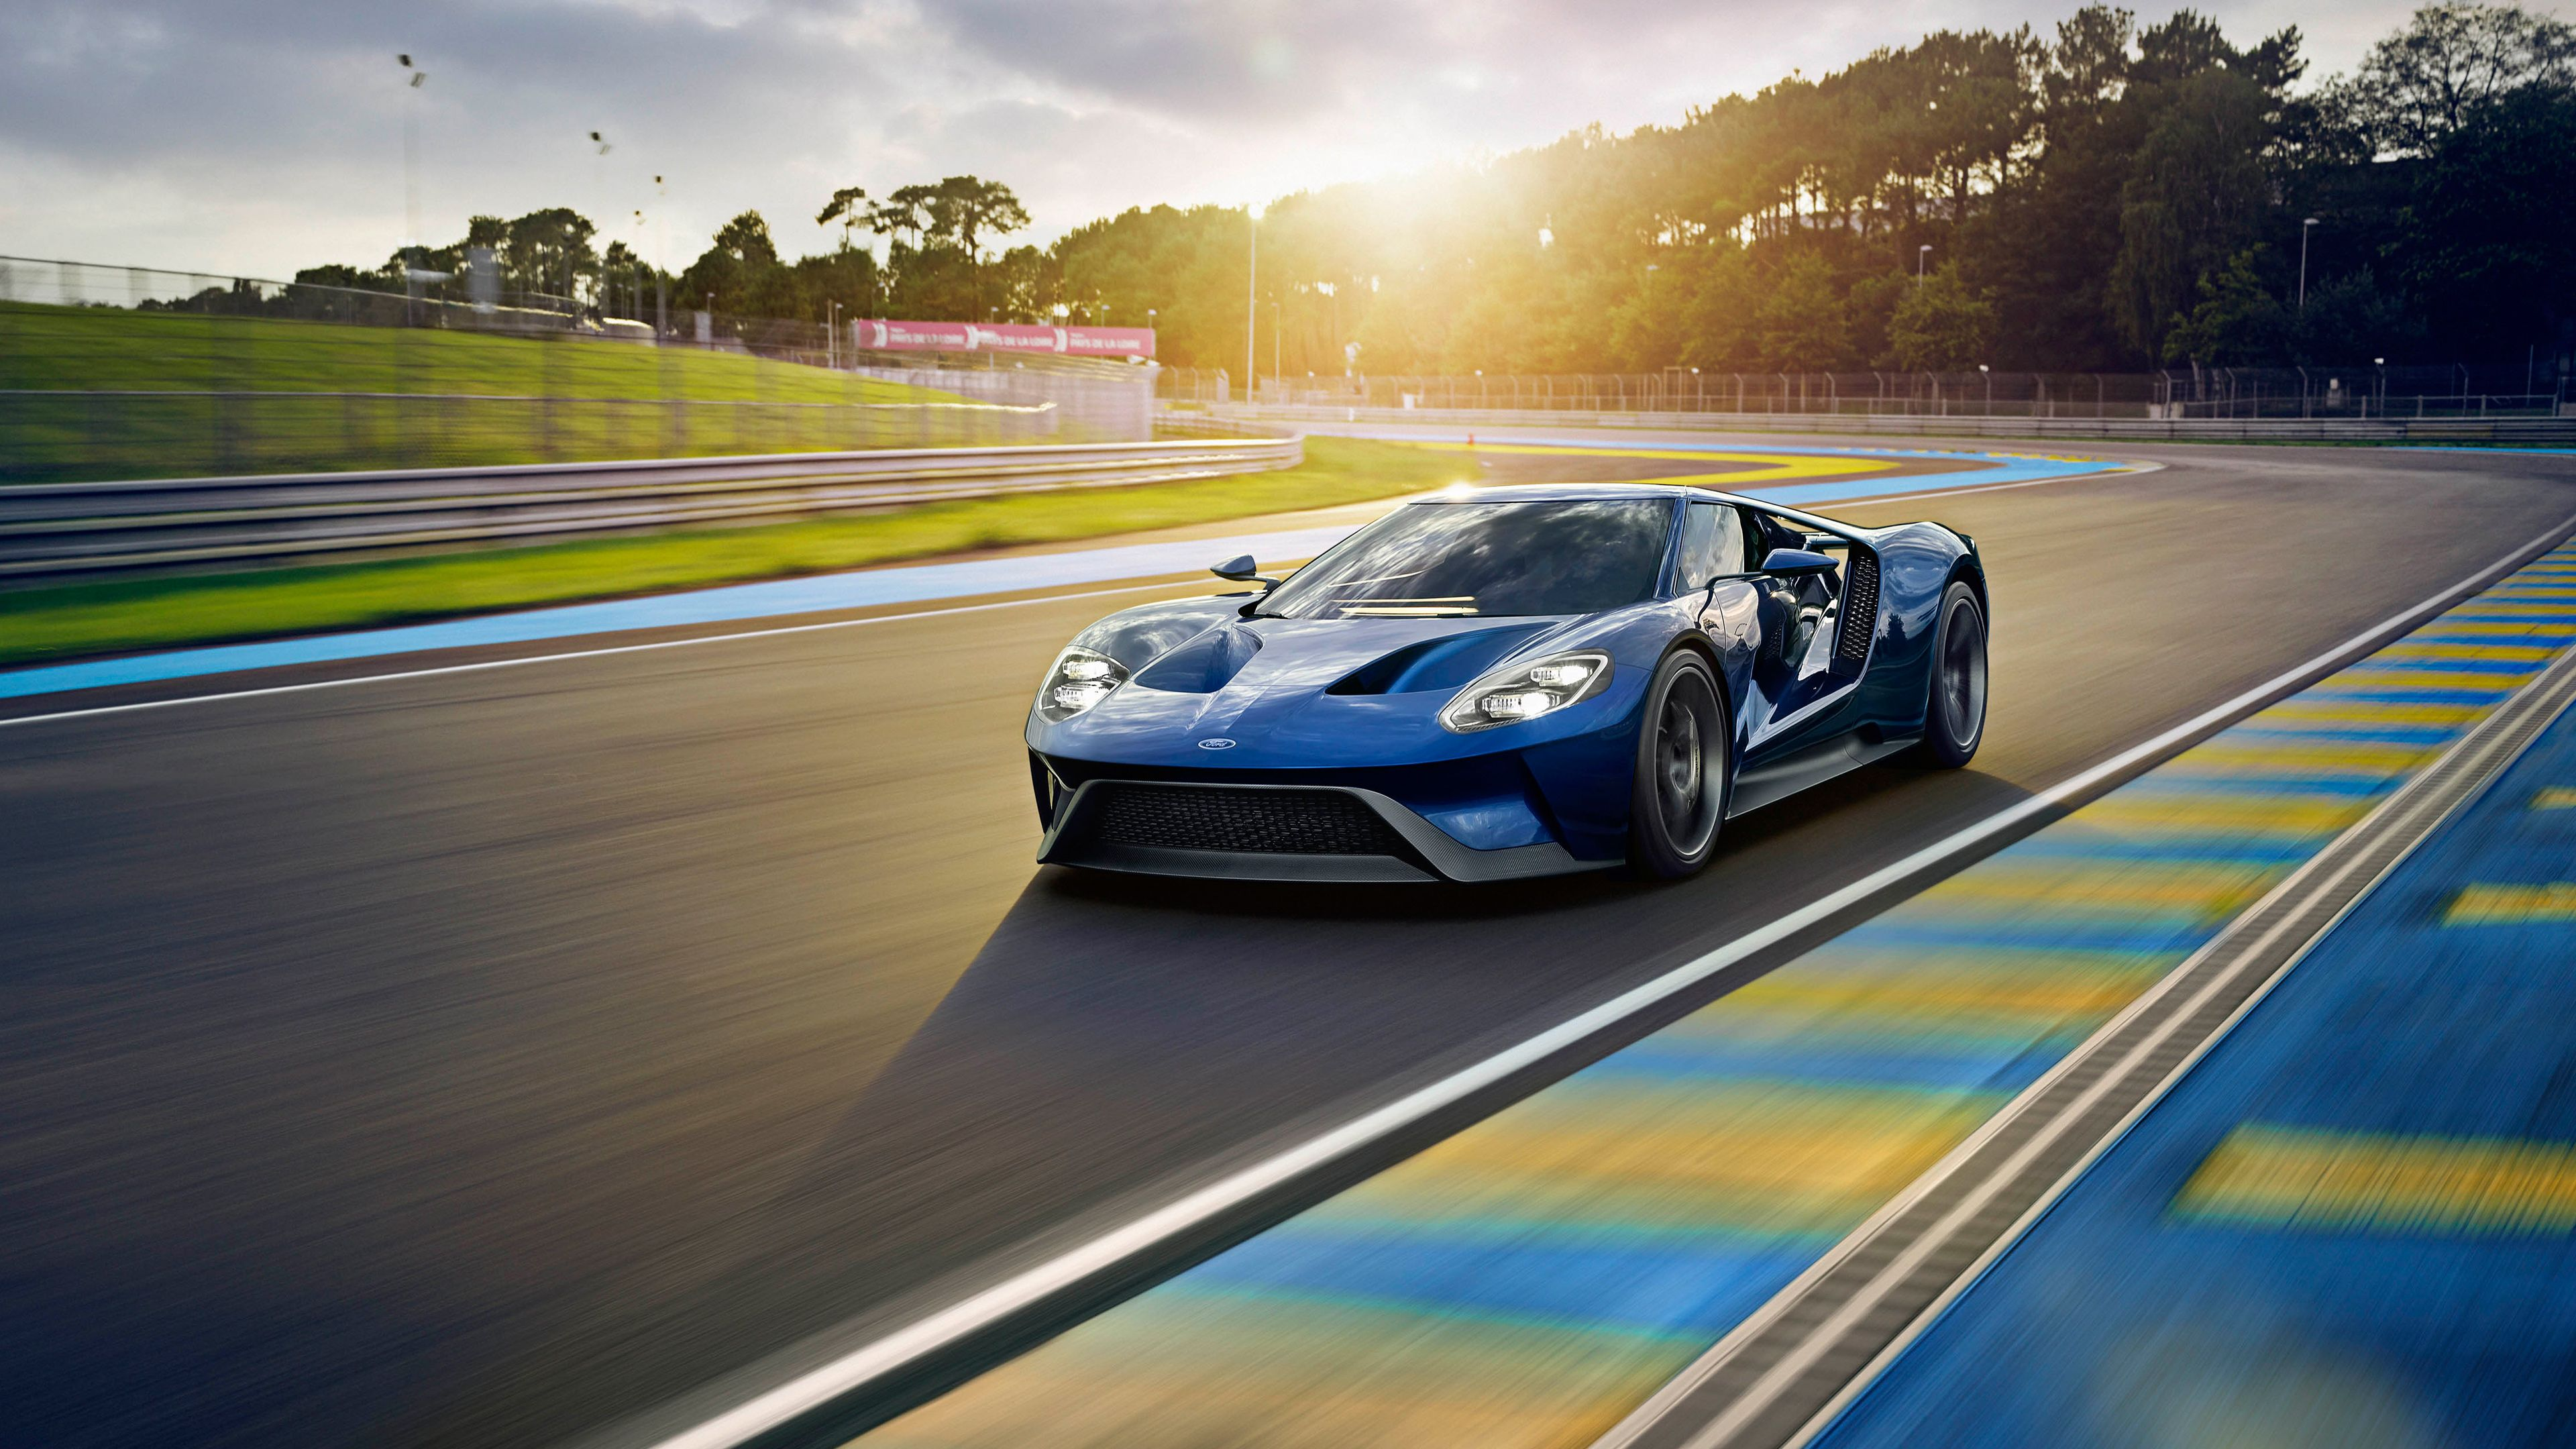 2017 Ford Gt Wallpaper Ford Gt 2017 954813 Hd